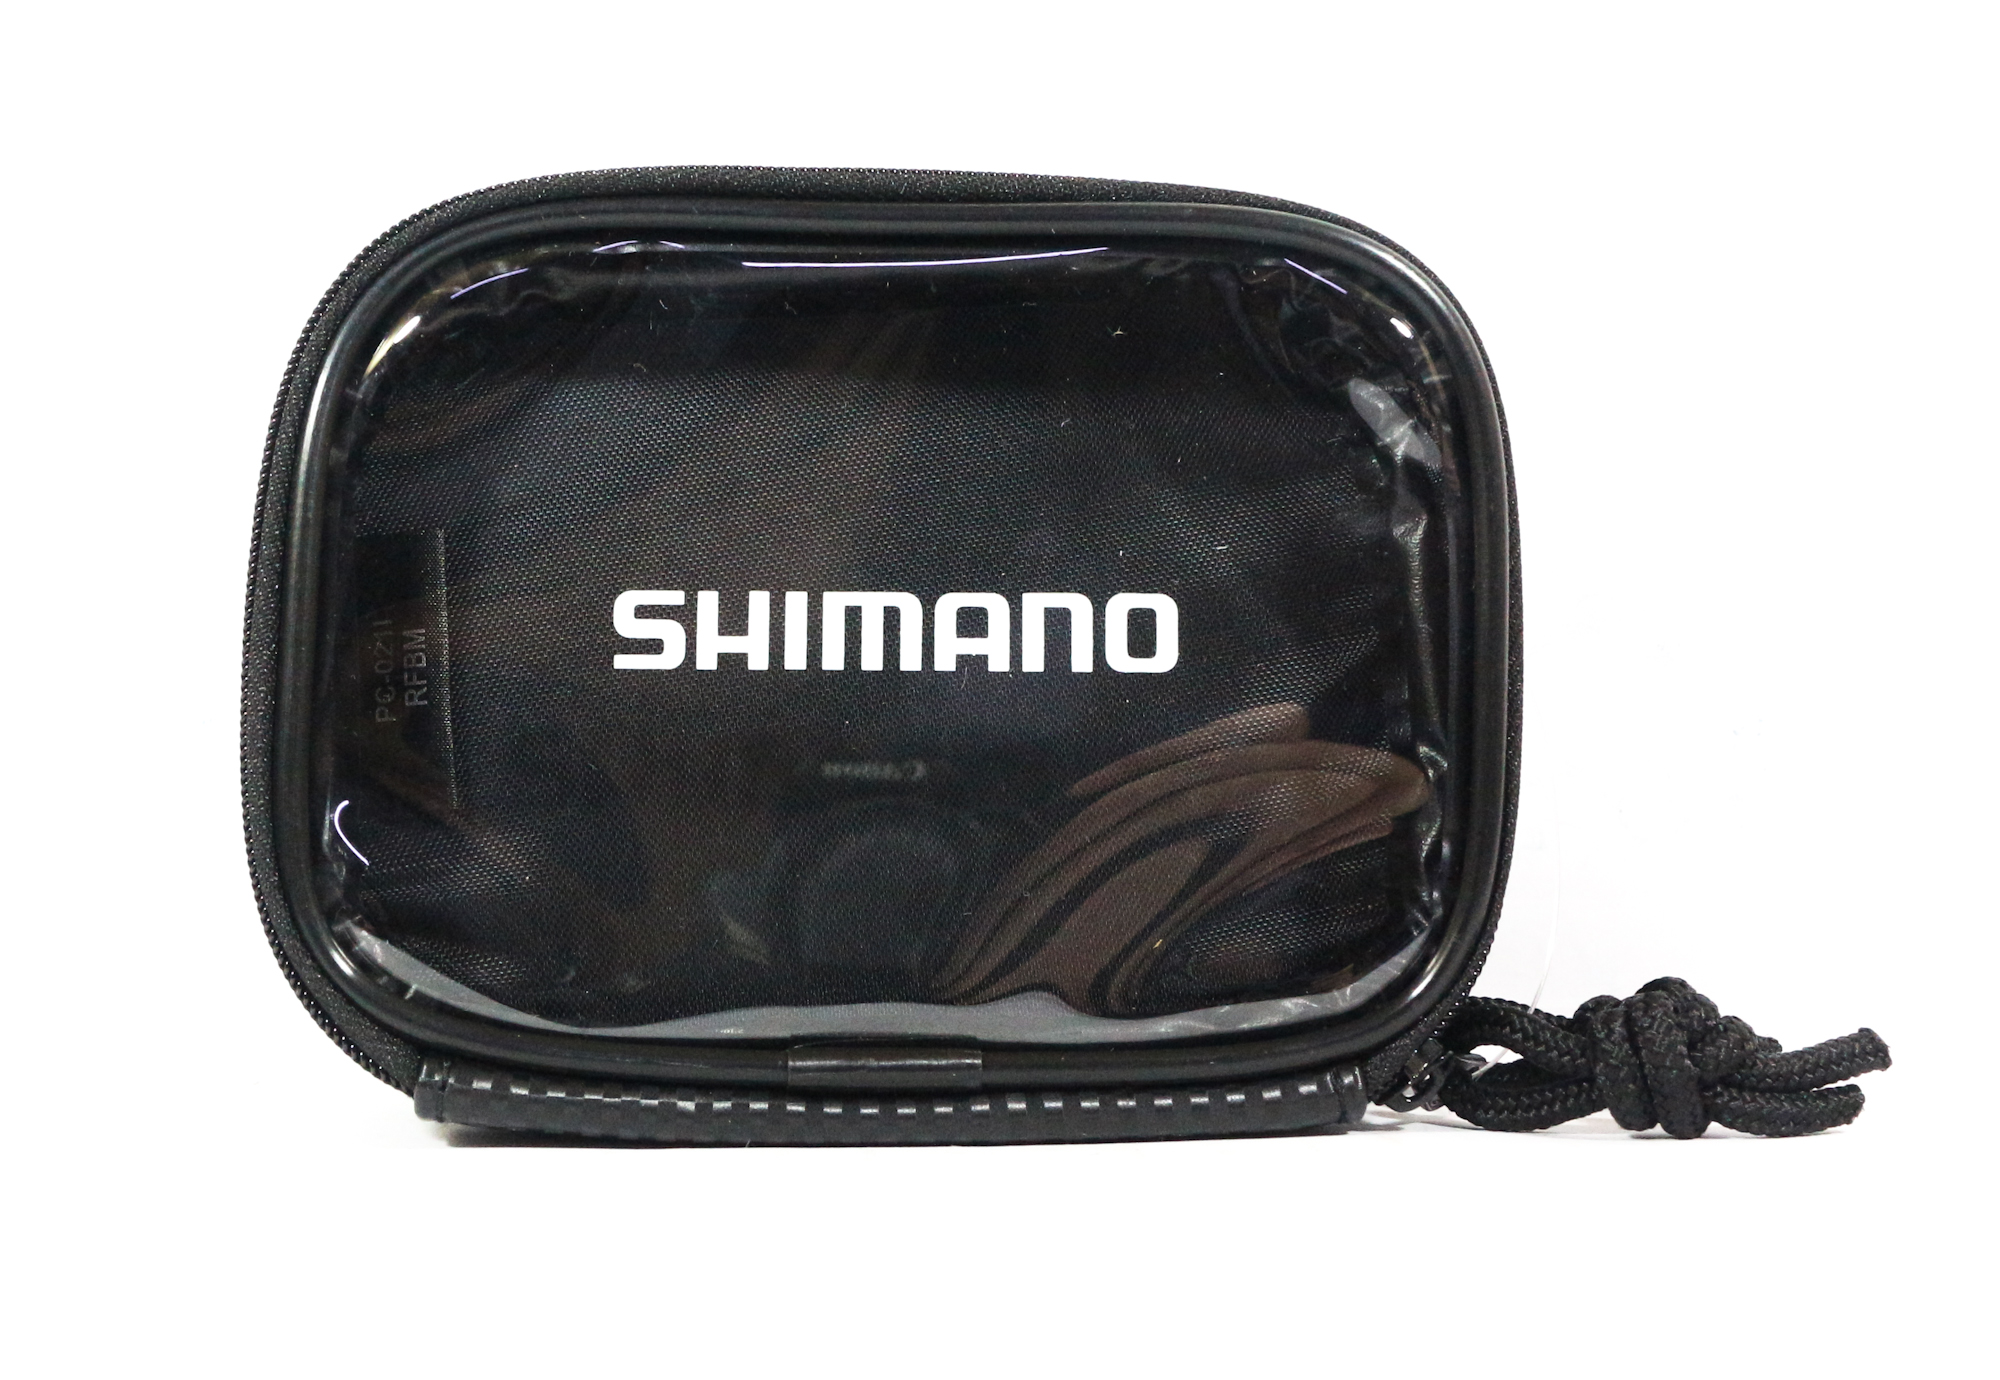 Shimano PC-021I Case Pouch 9 x 125 x 5cm Double Zip Black 718150